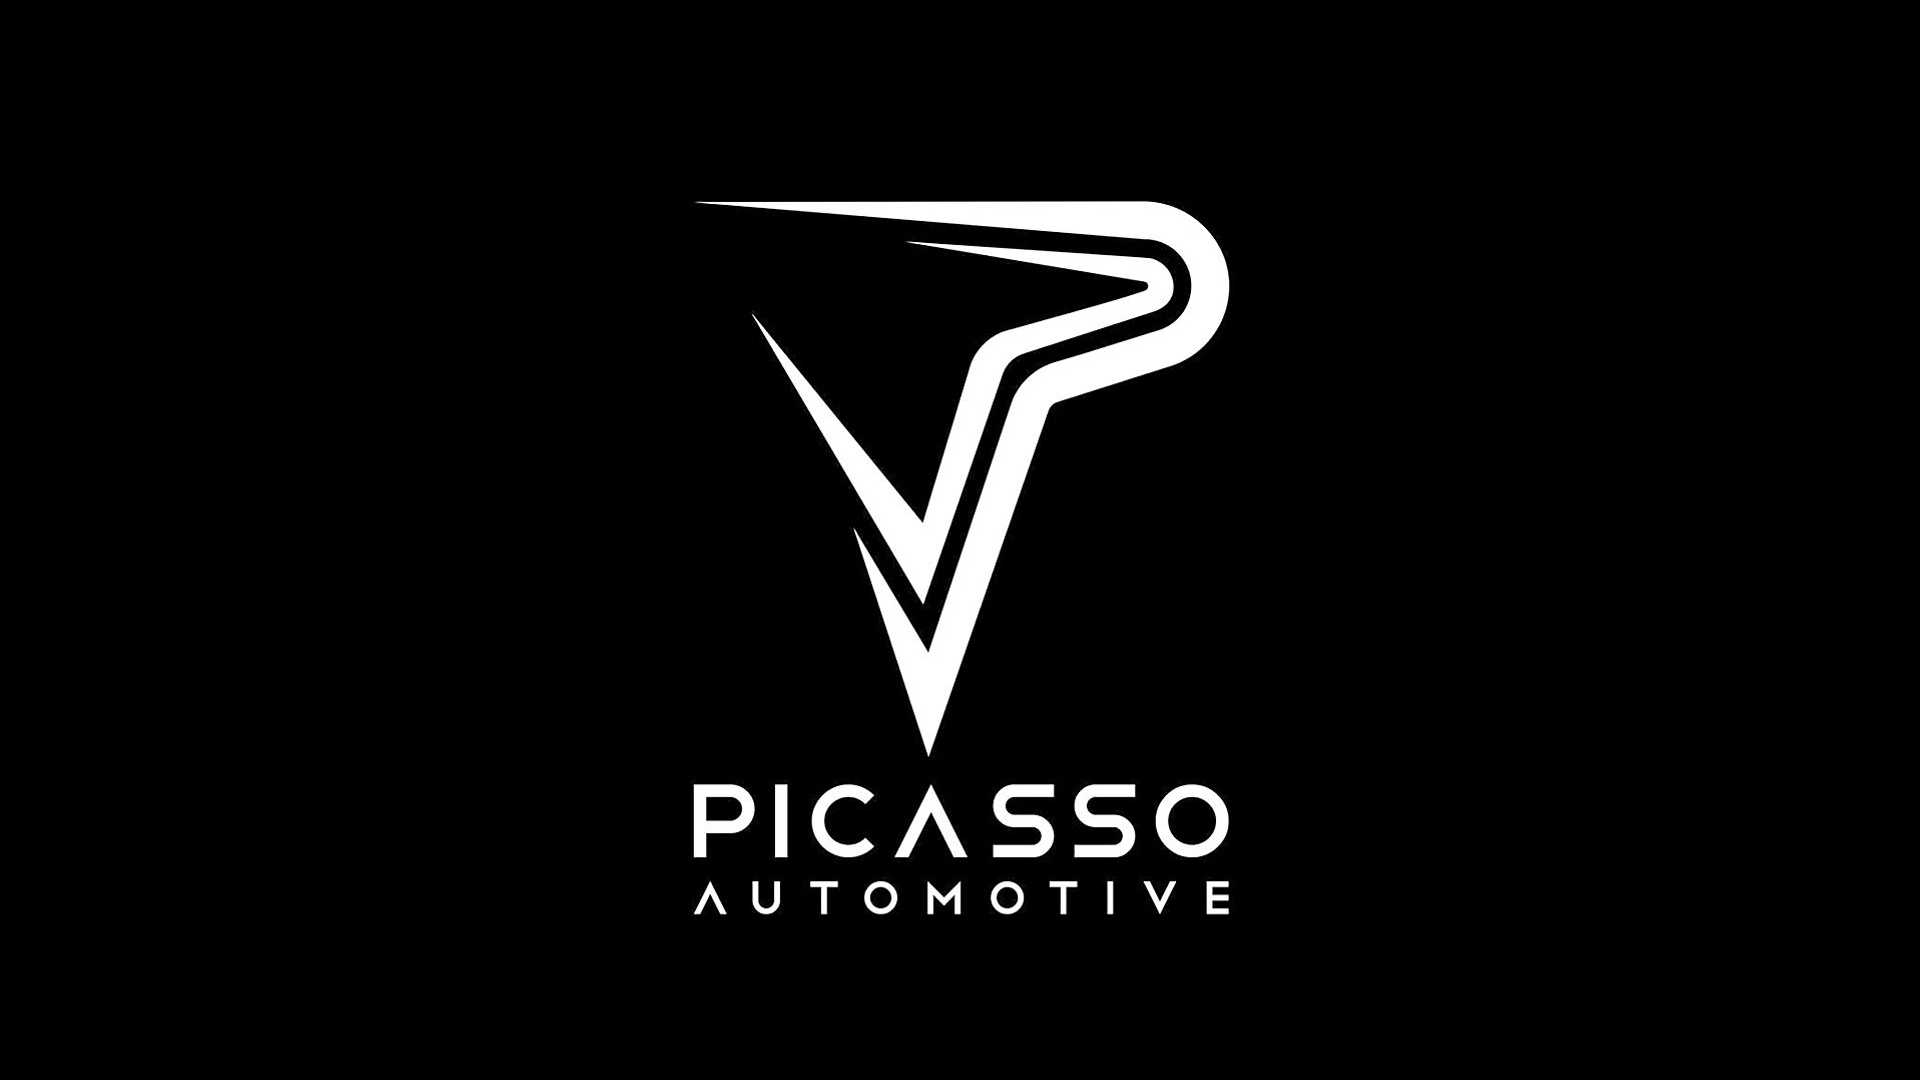 Picasso-PS-01-13